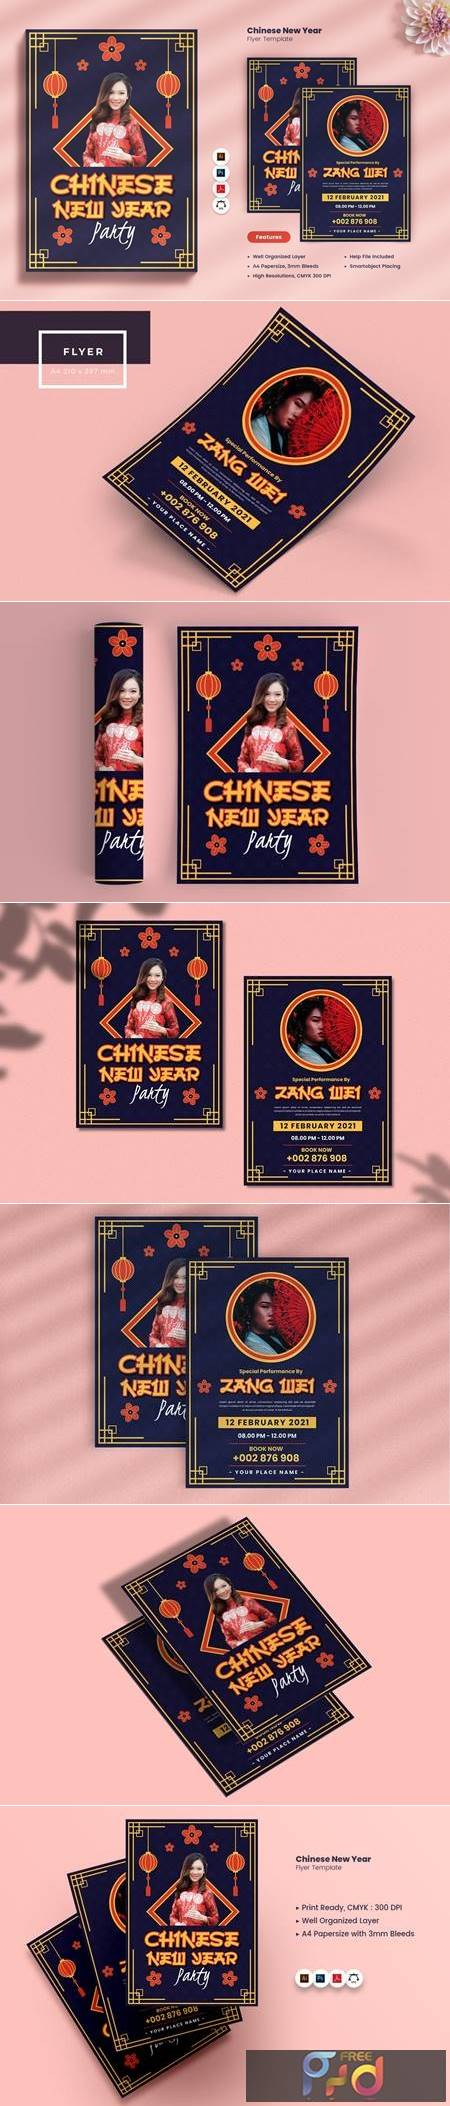 Chinese New Year Party Flyer 7JCH8XH 1